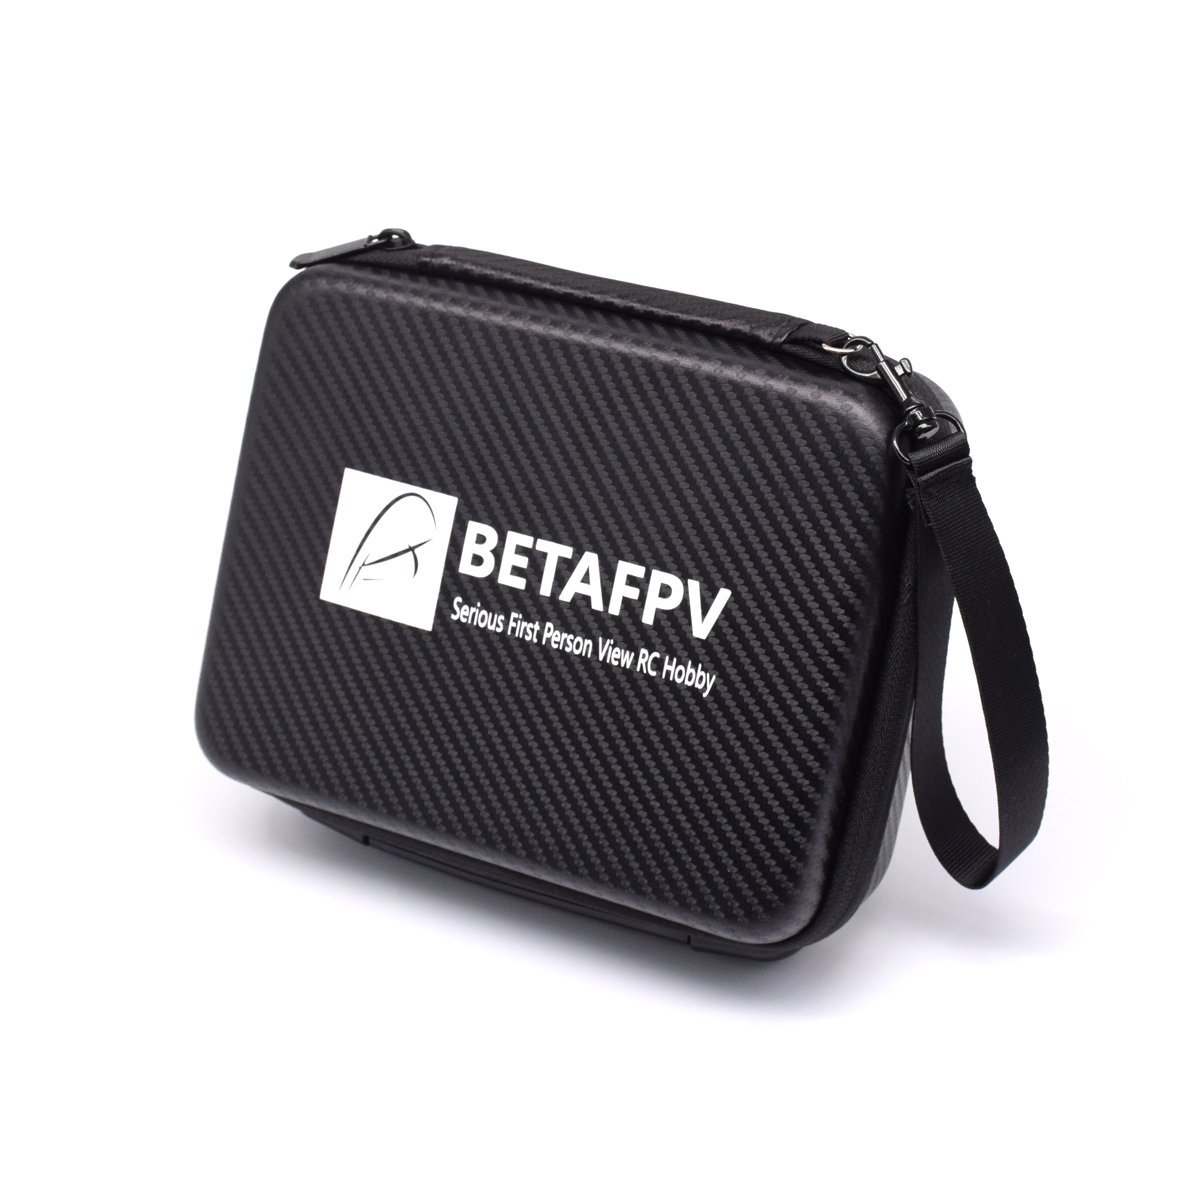 BETAFPV Backpack Carrying Case Blade Inductrix Storage Box with Foam Liner for Tiny Whoop Eachine E010 etc механизм светорегулятора 40 800вт индикация с п mono elec